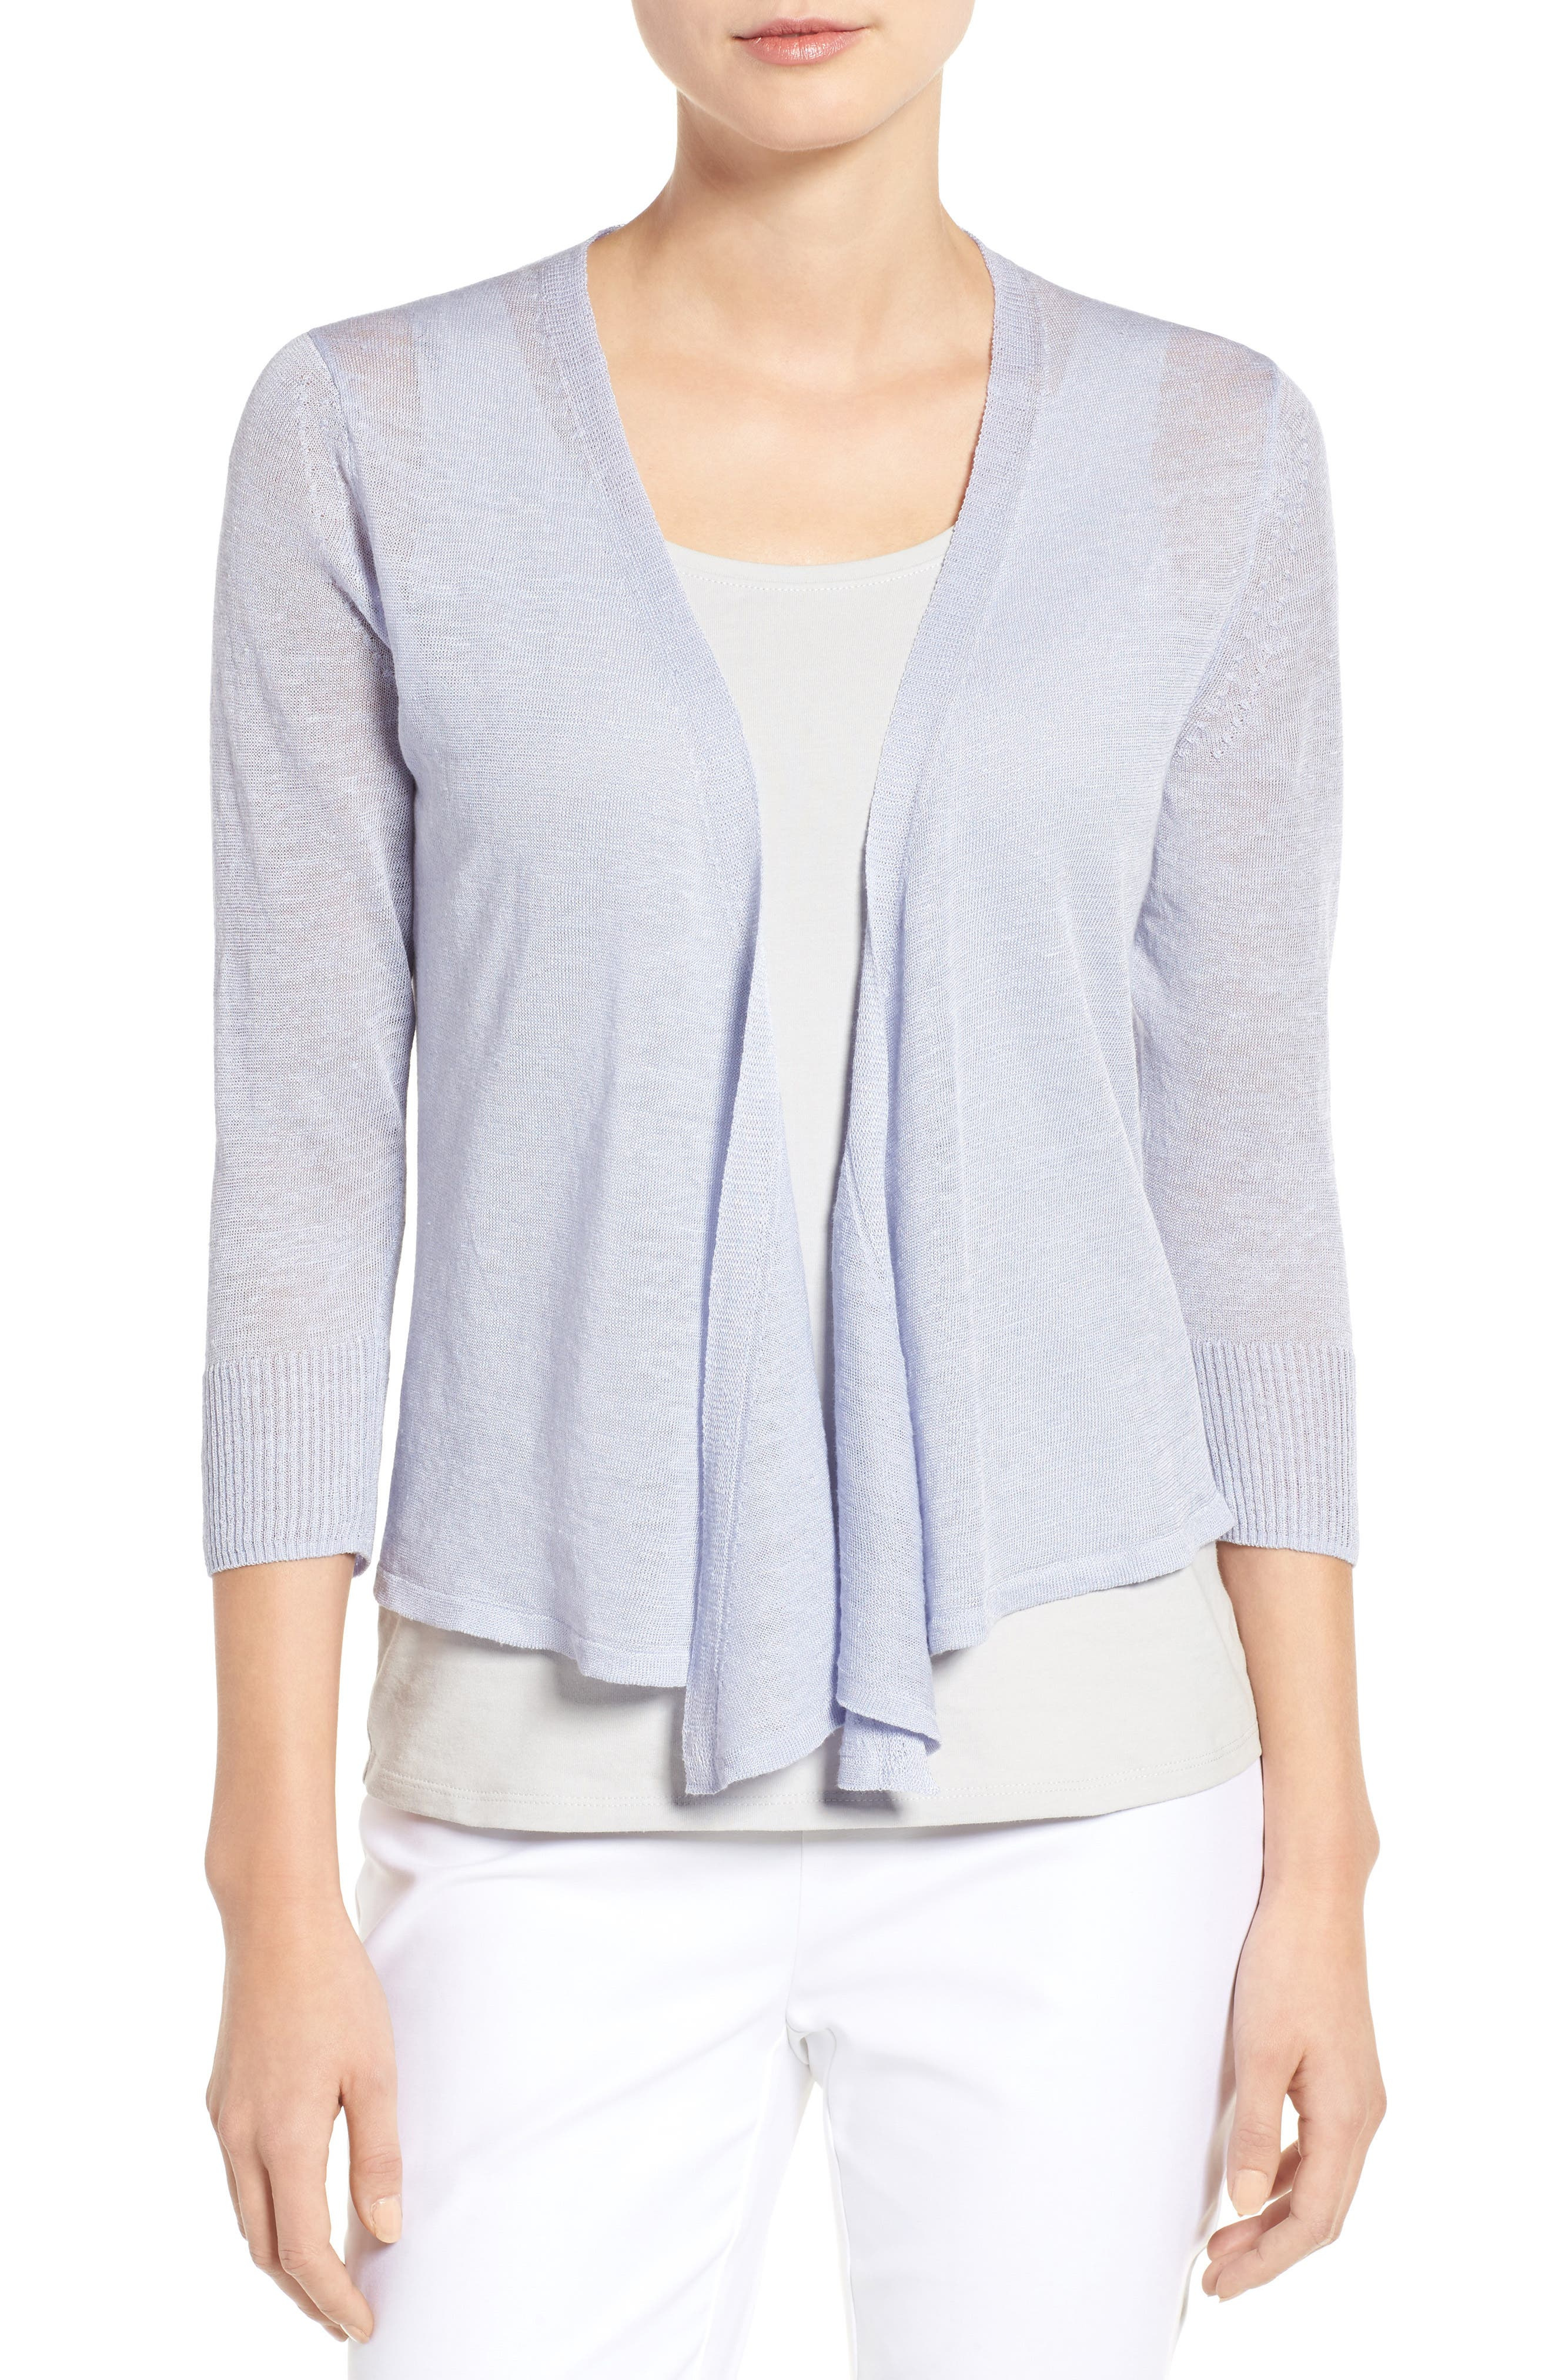 NIC+ZOE 4-Way Convertible Three Quarter Sleeve Cardigan (Regular and Petite)